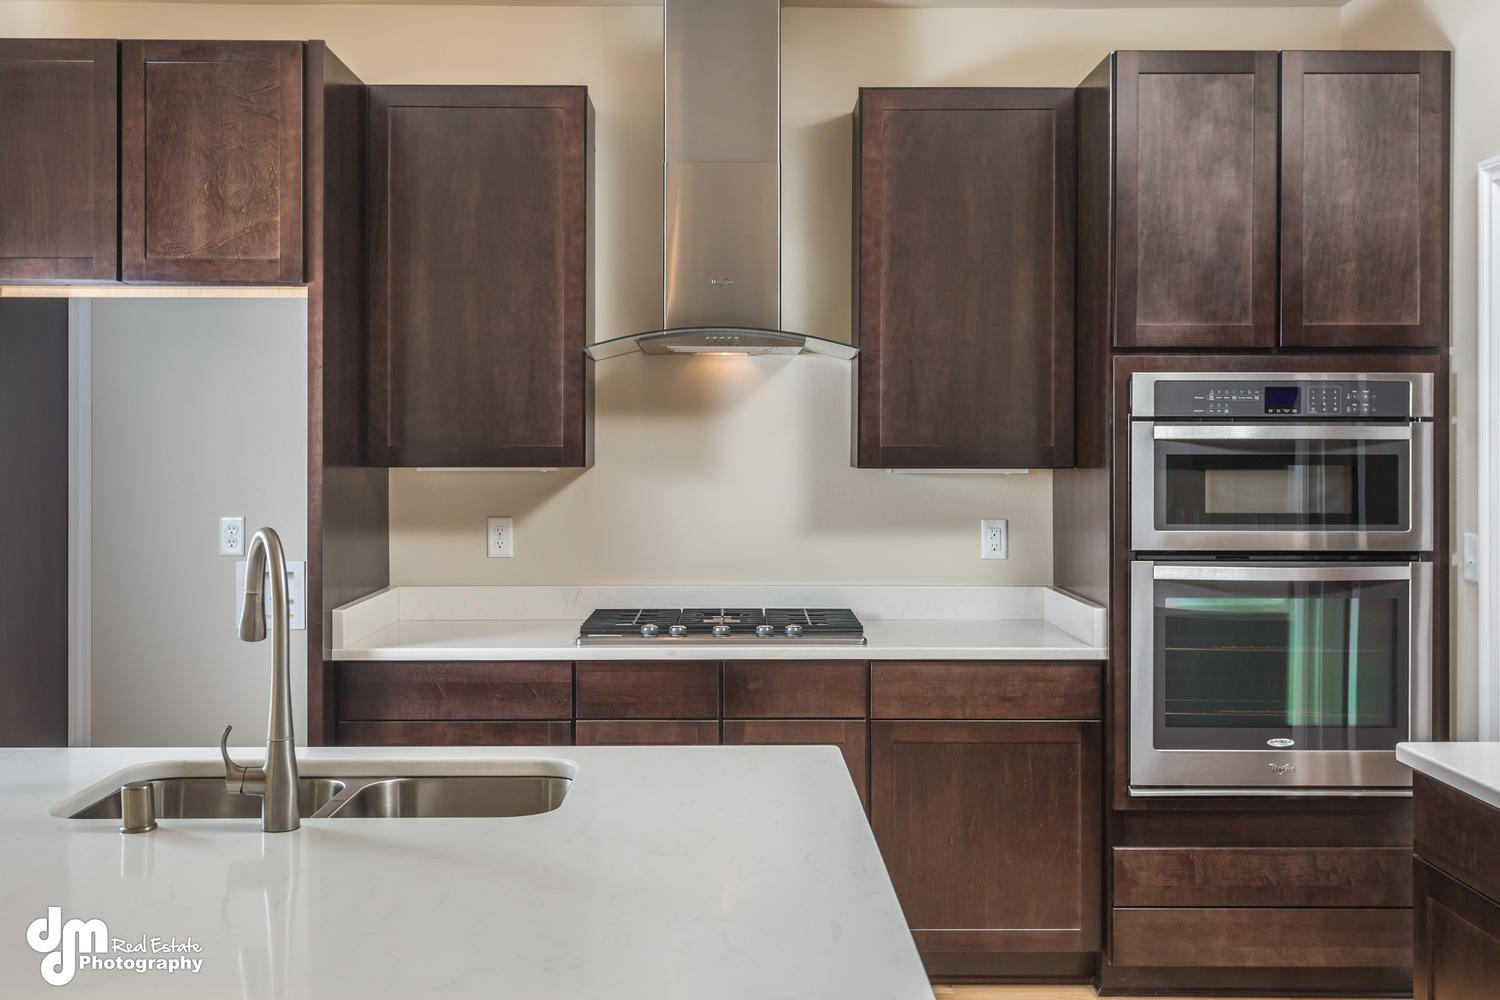 Kitchen featured in the St Elias 2335 By Spinell Homes in Anchorage, AK